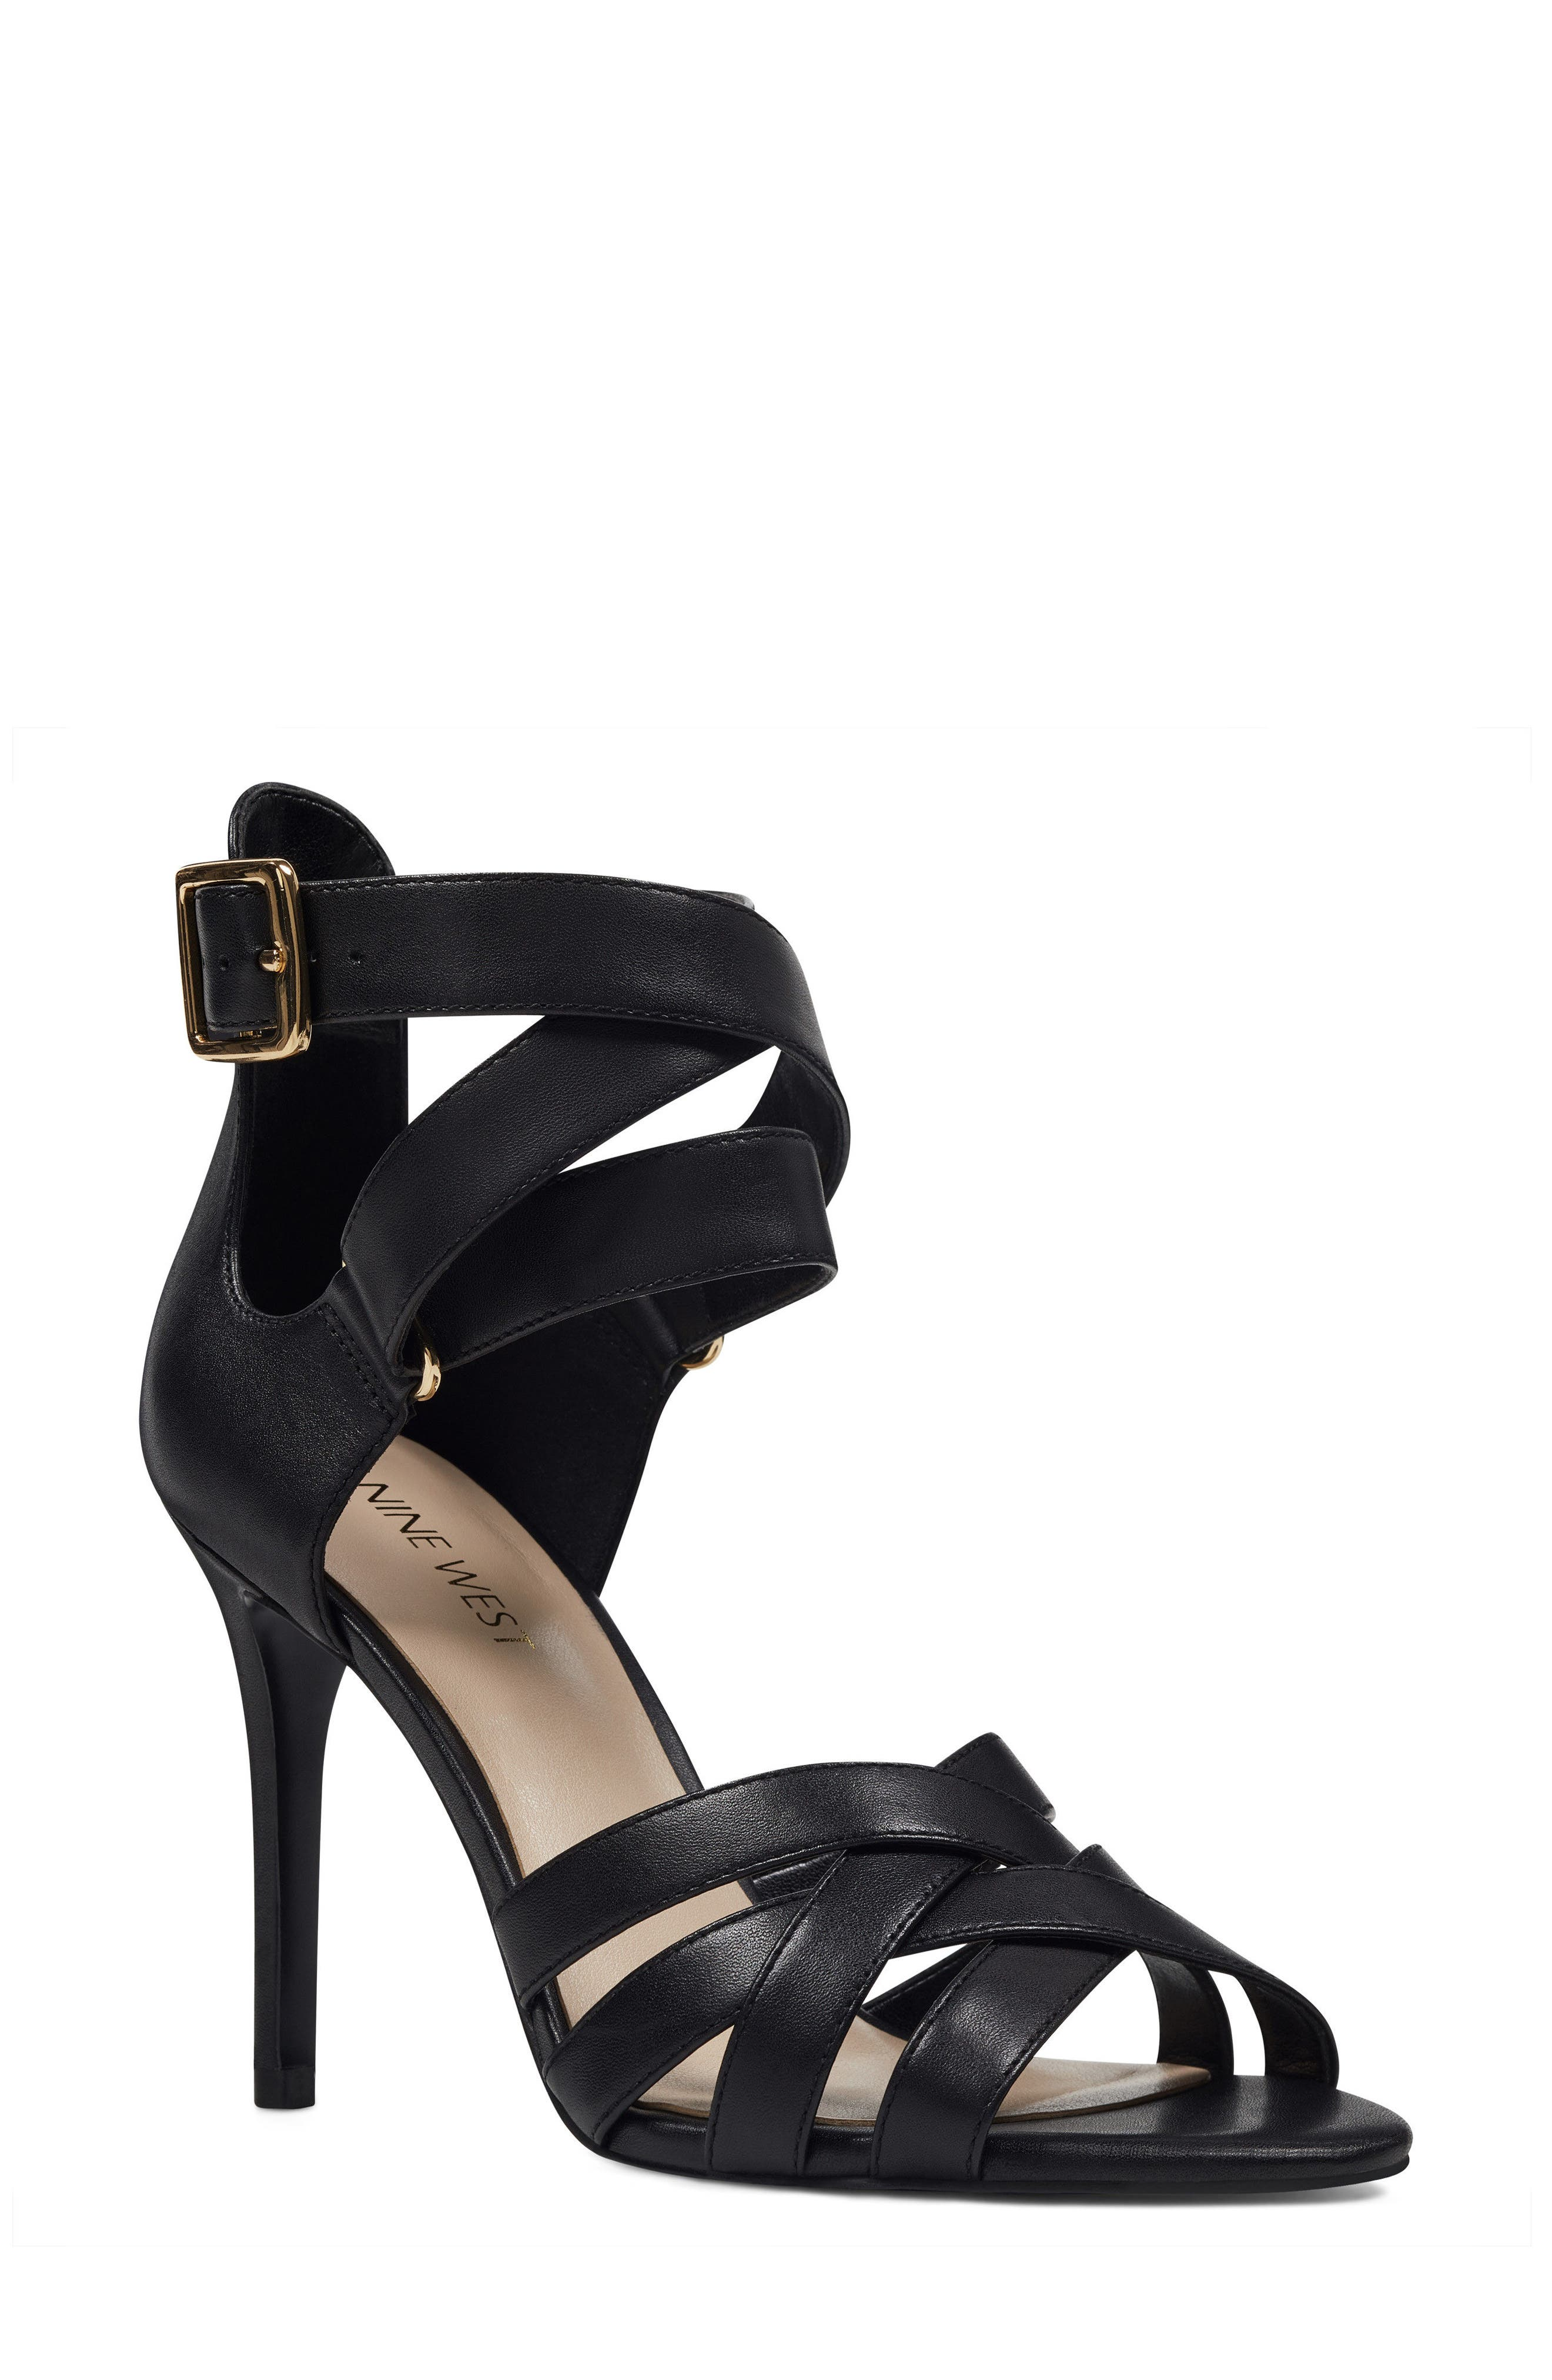 McGlynn Strappy Sandal,                         Main,                         color, Black Leather